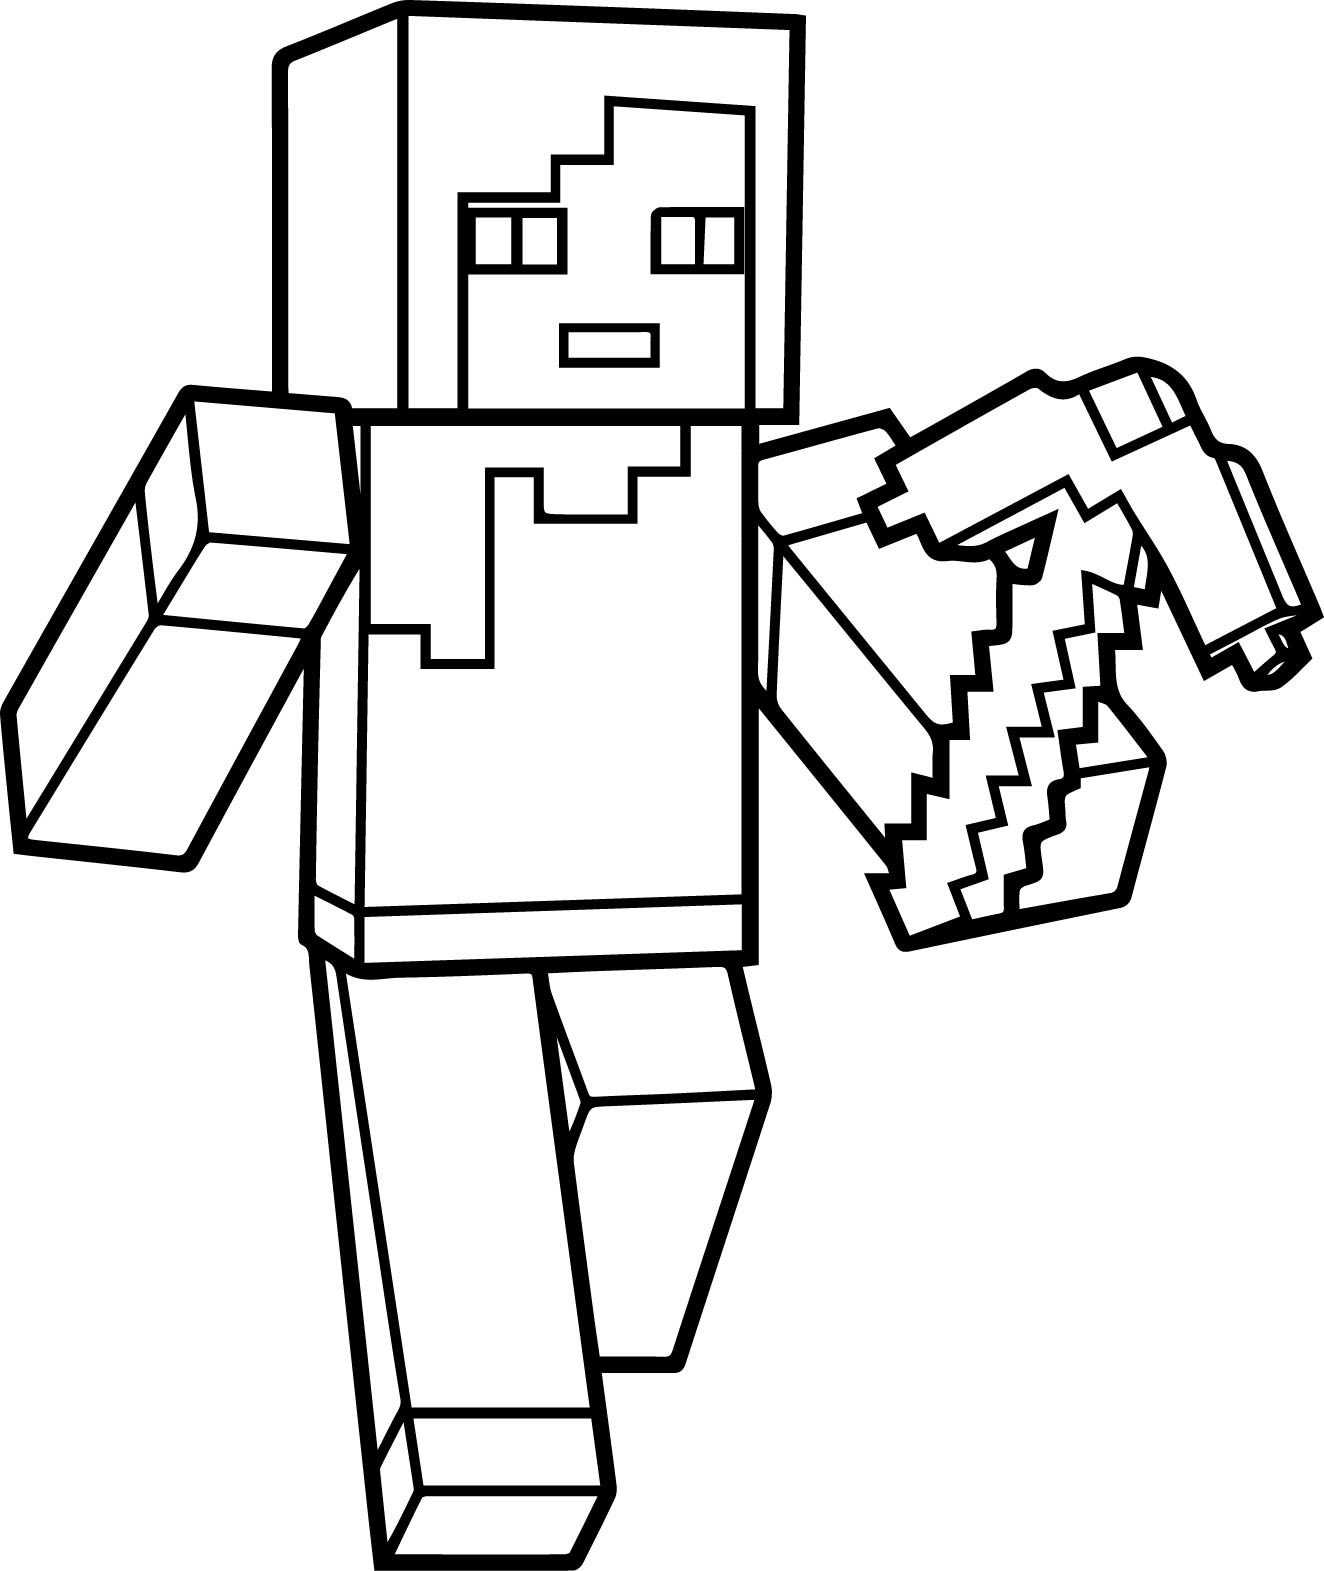 1324x1571 Minecraft Coloring Sheets